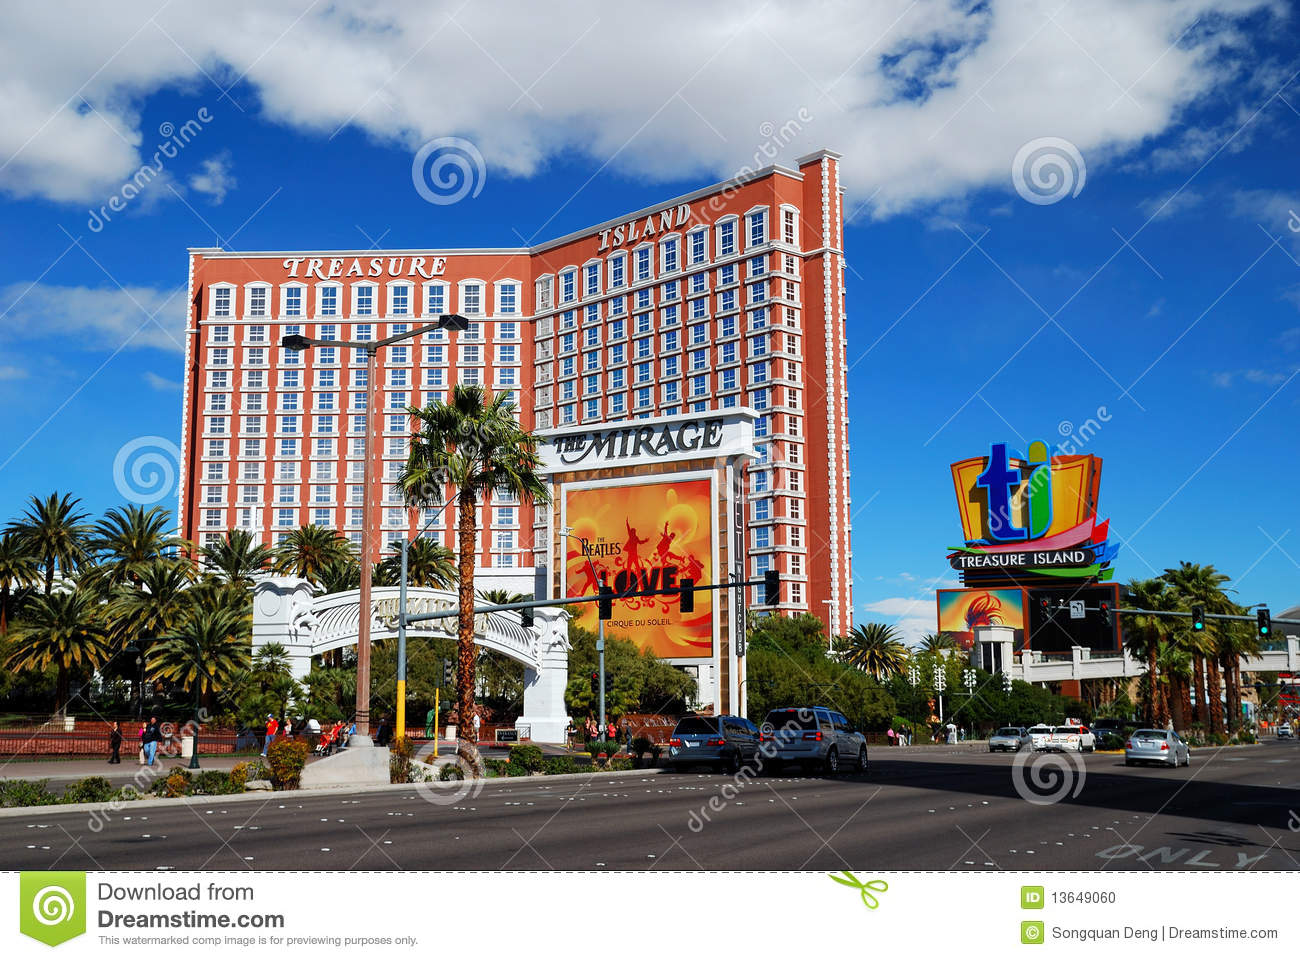 Vegas treasure island hotel and casino foreclosure real estate casino